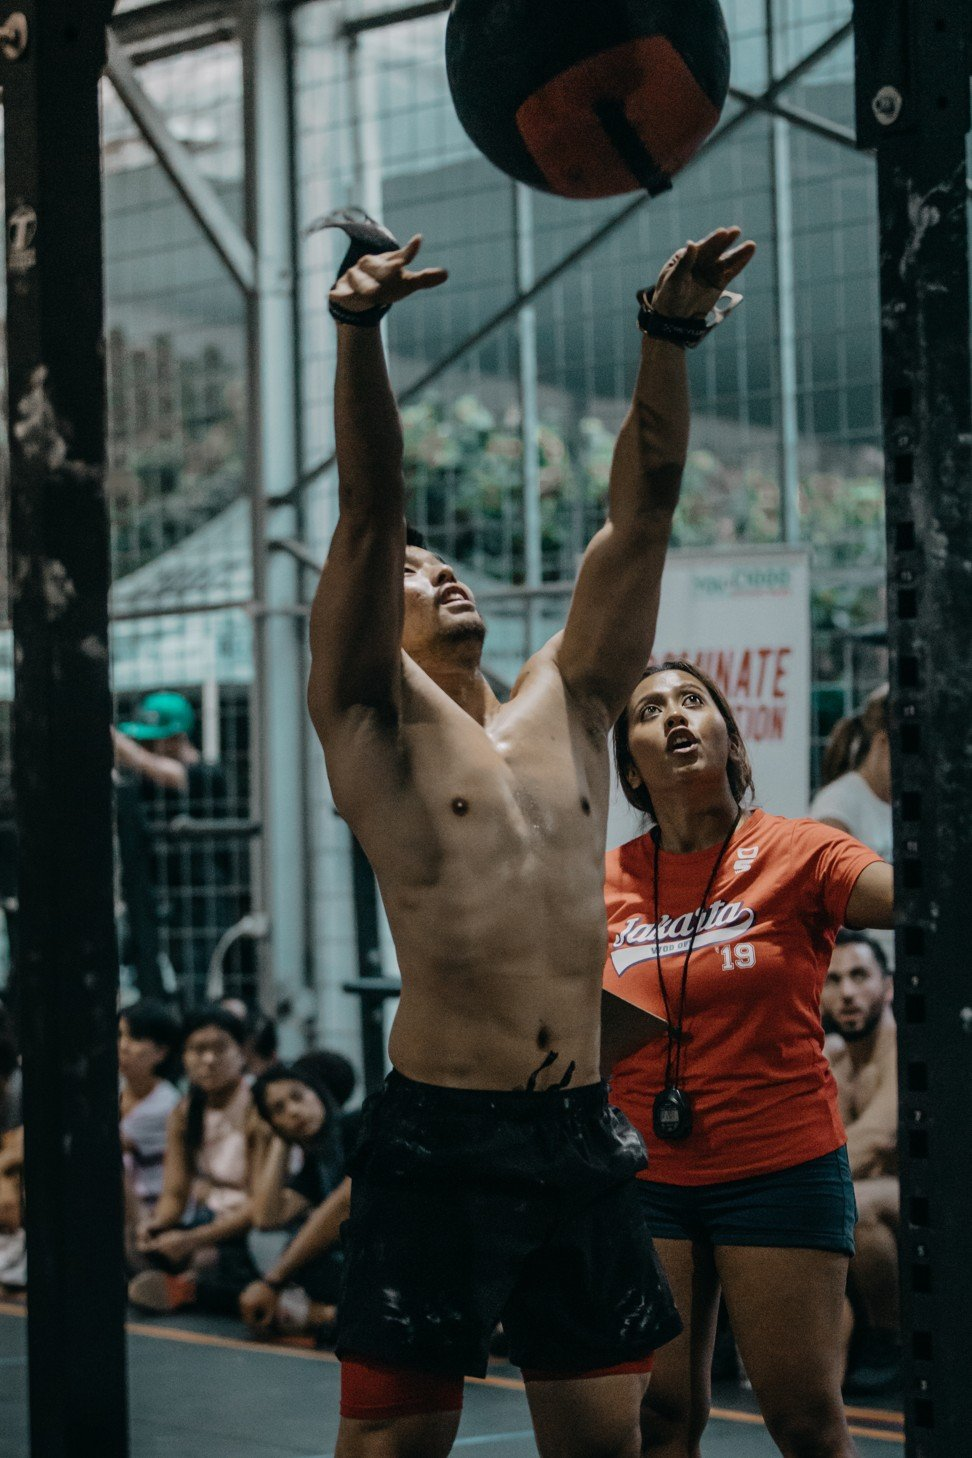 Ooi said if and when the CrossFit Games are held, he will be excited to represent his birth country. Photo: Jakarta WOD Off Day 2